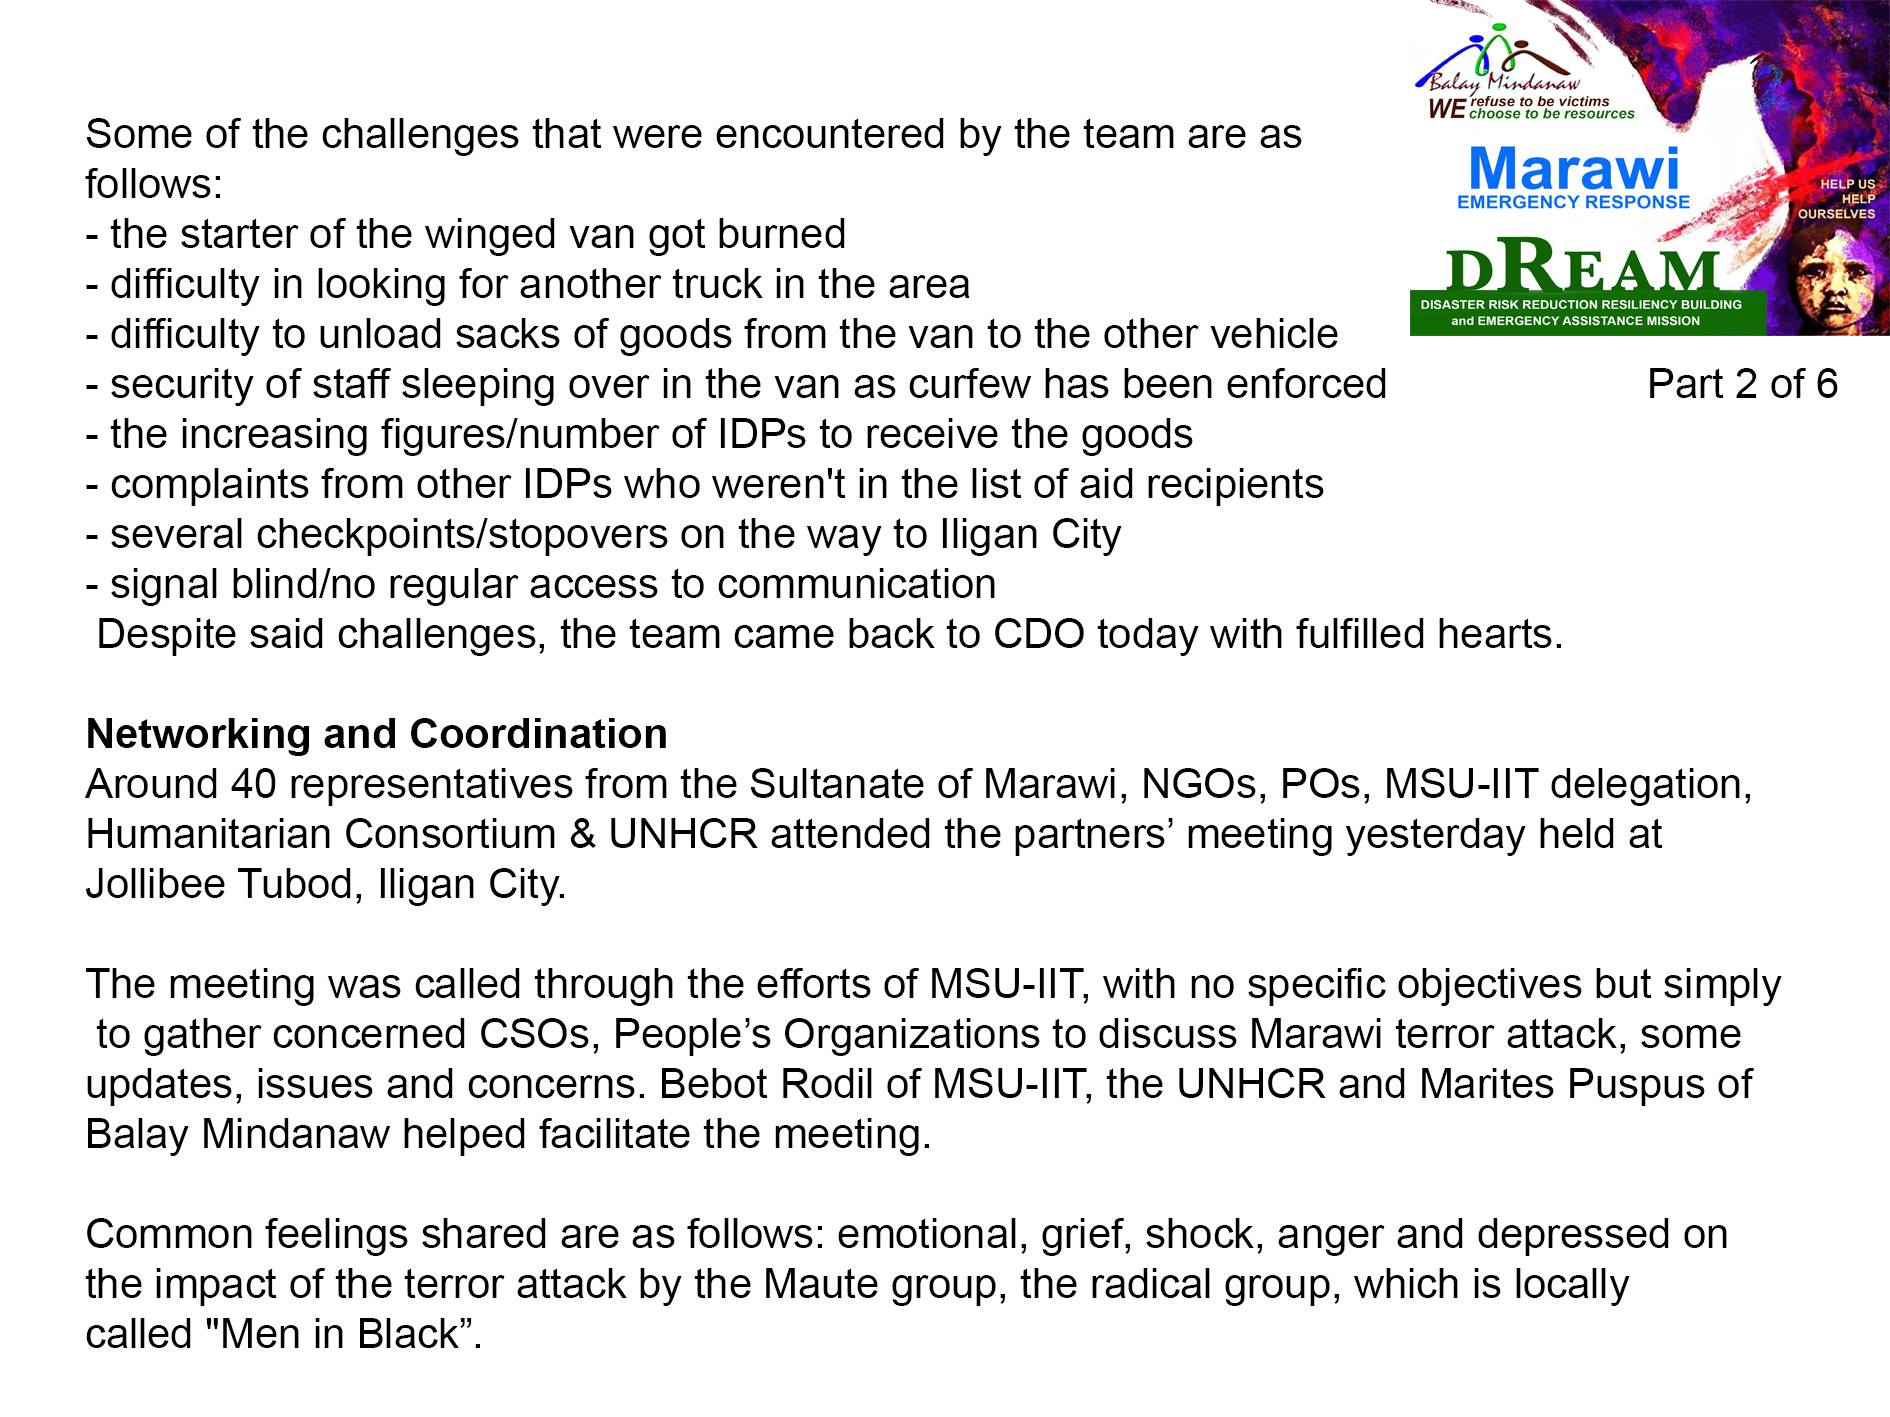 jun12017-Marawi-update-6